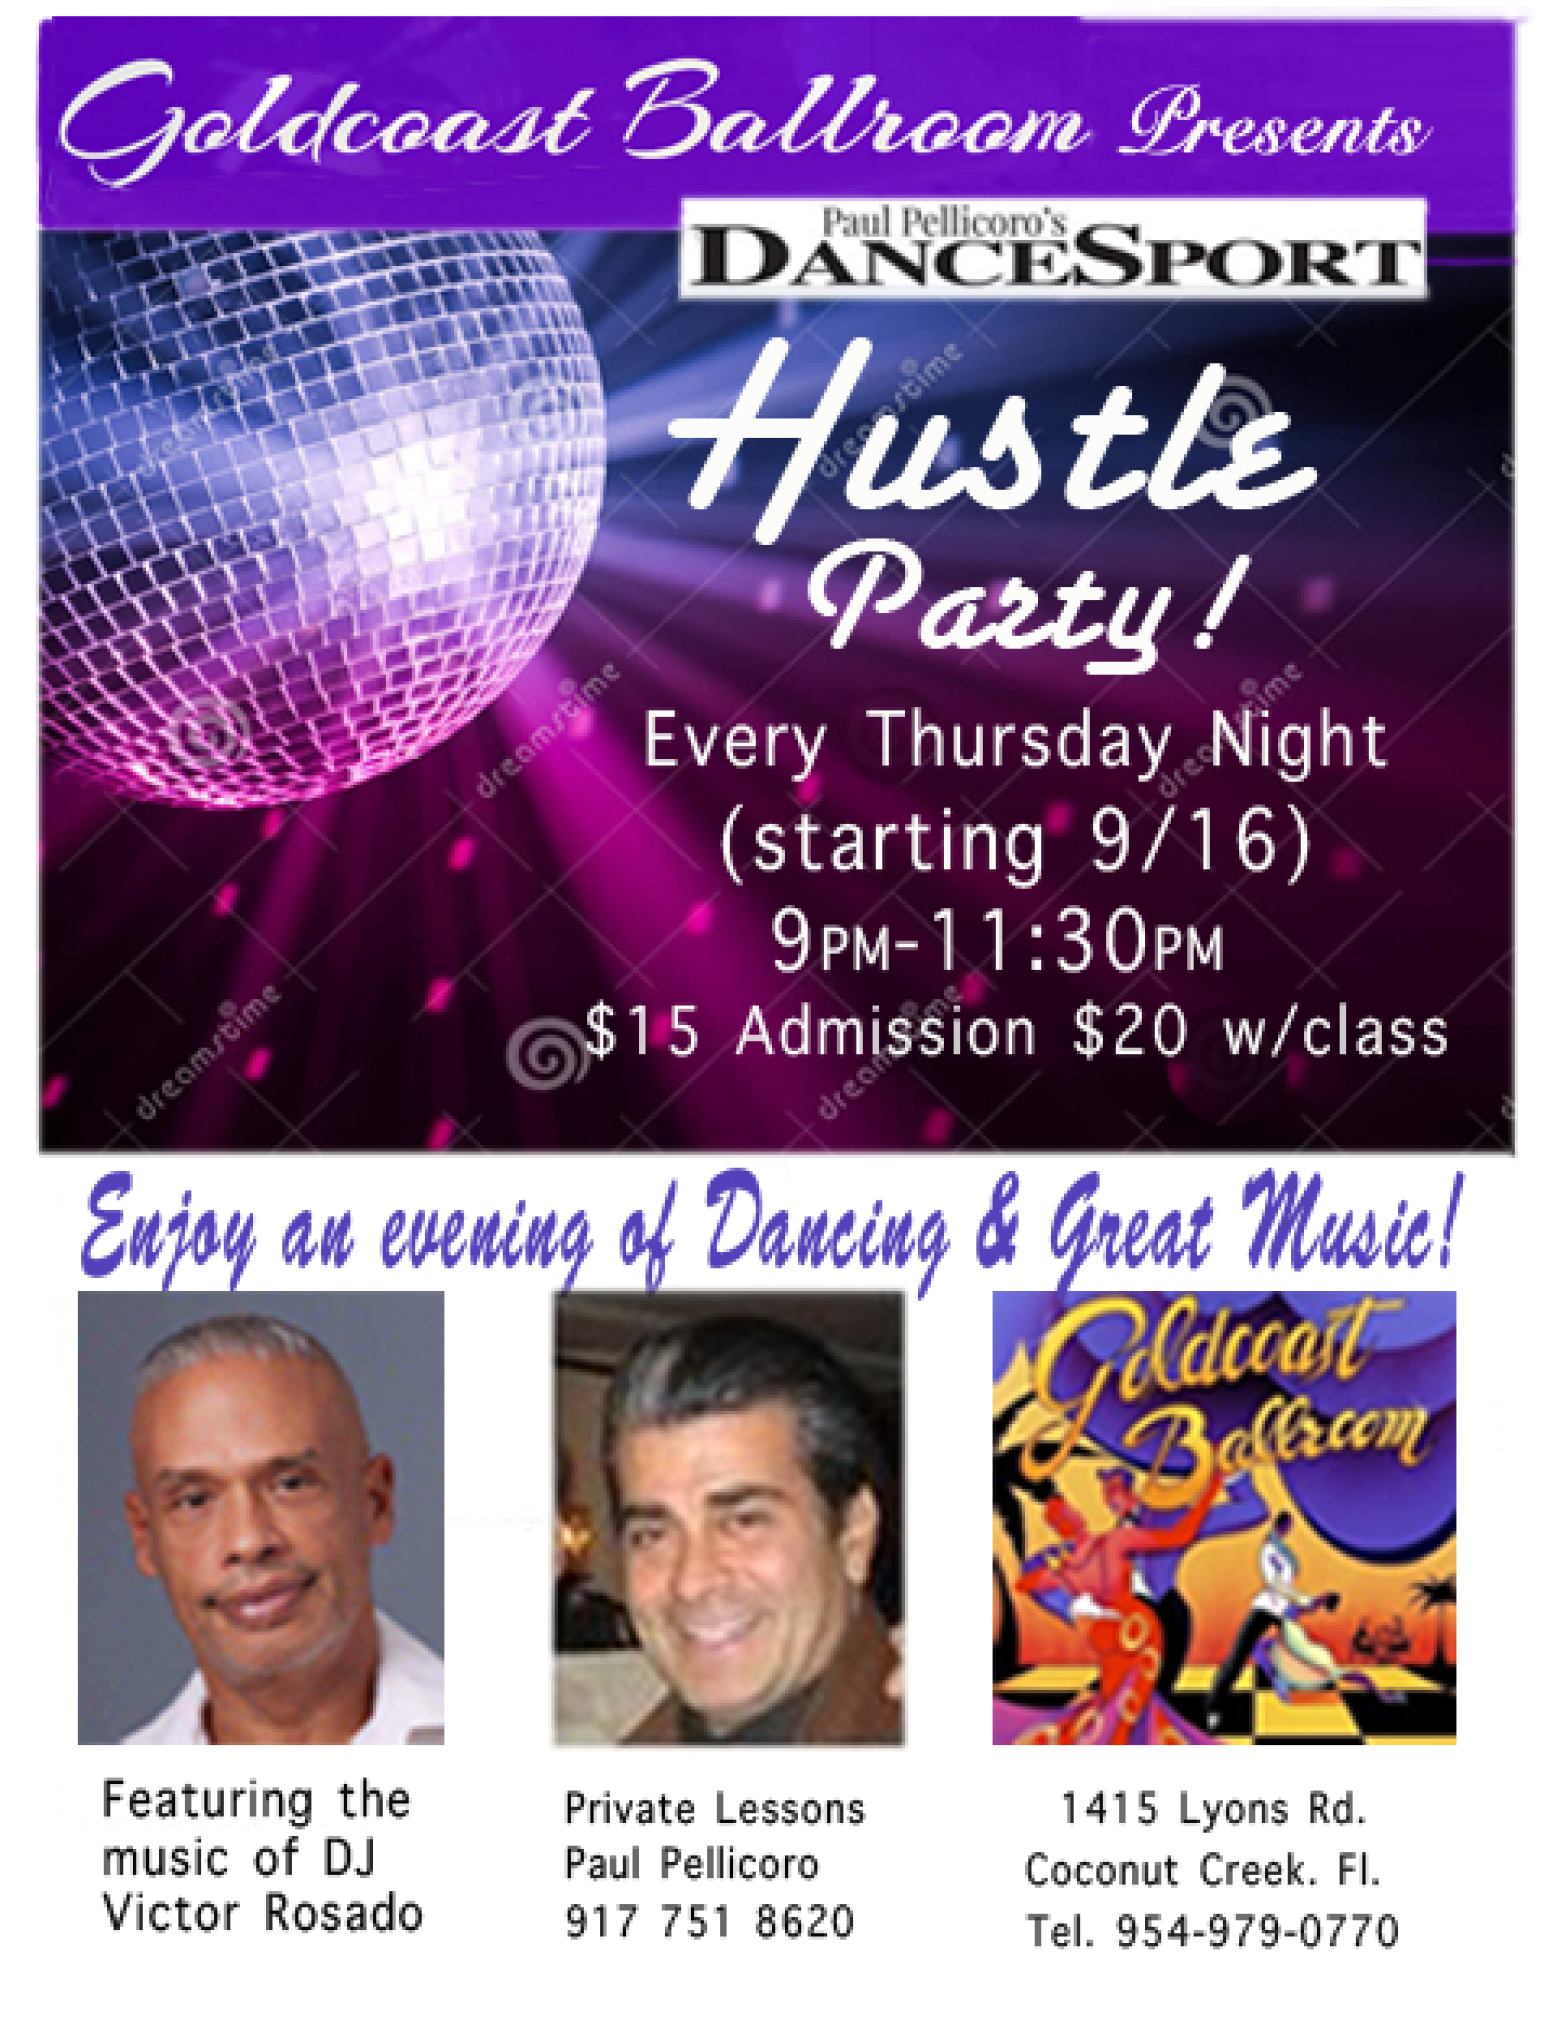 Hustle Party - Every Thursday, starting 9-16 (9PM-11:30 PM)